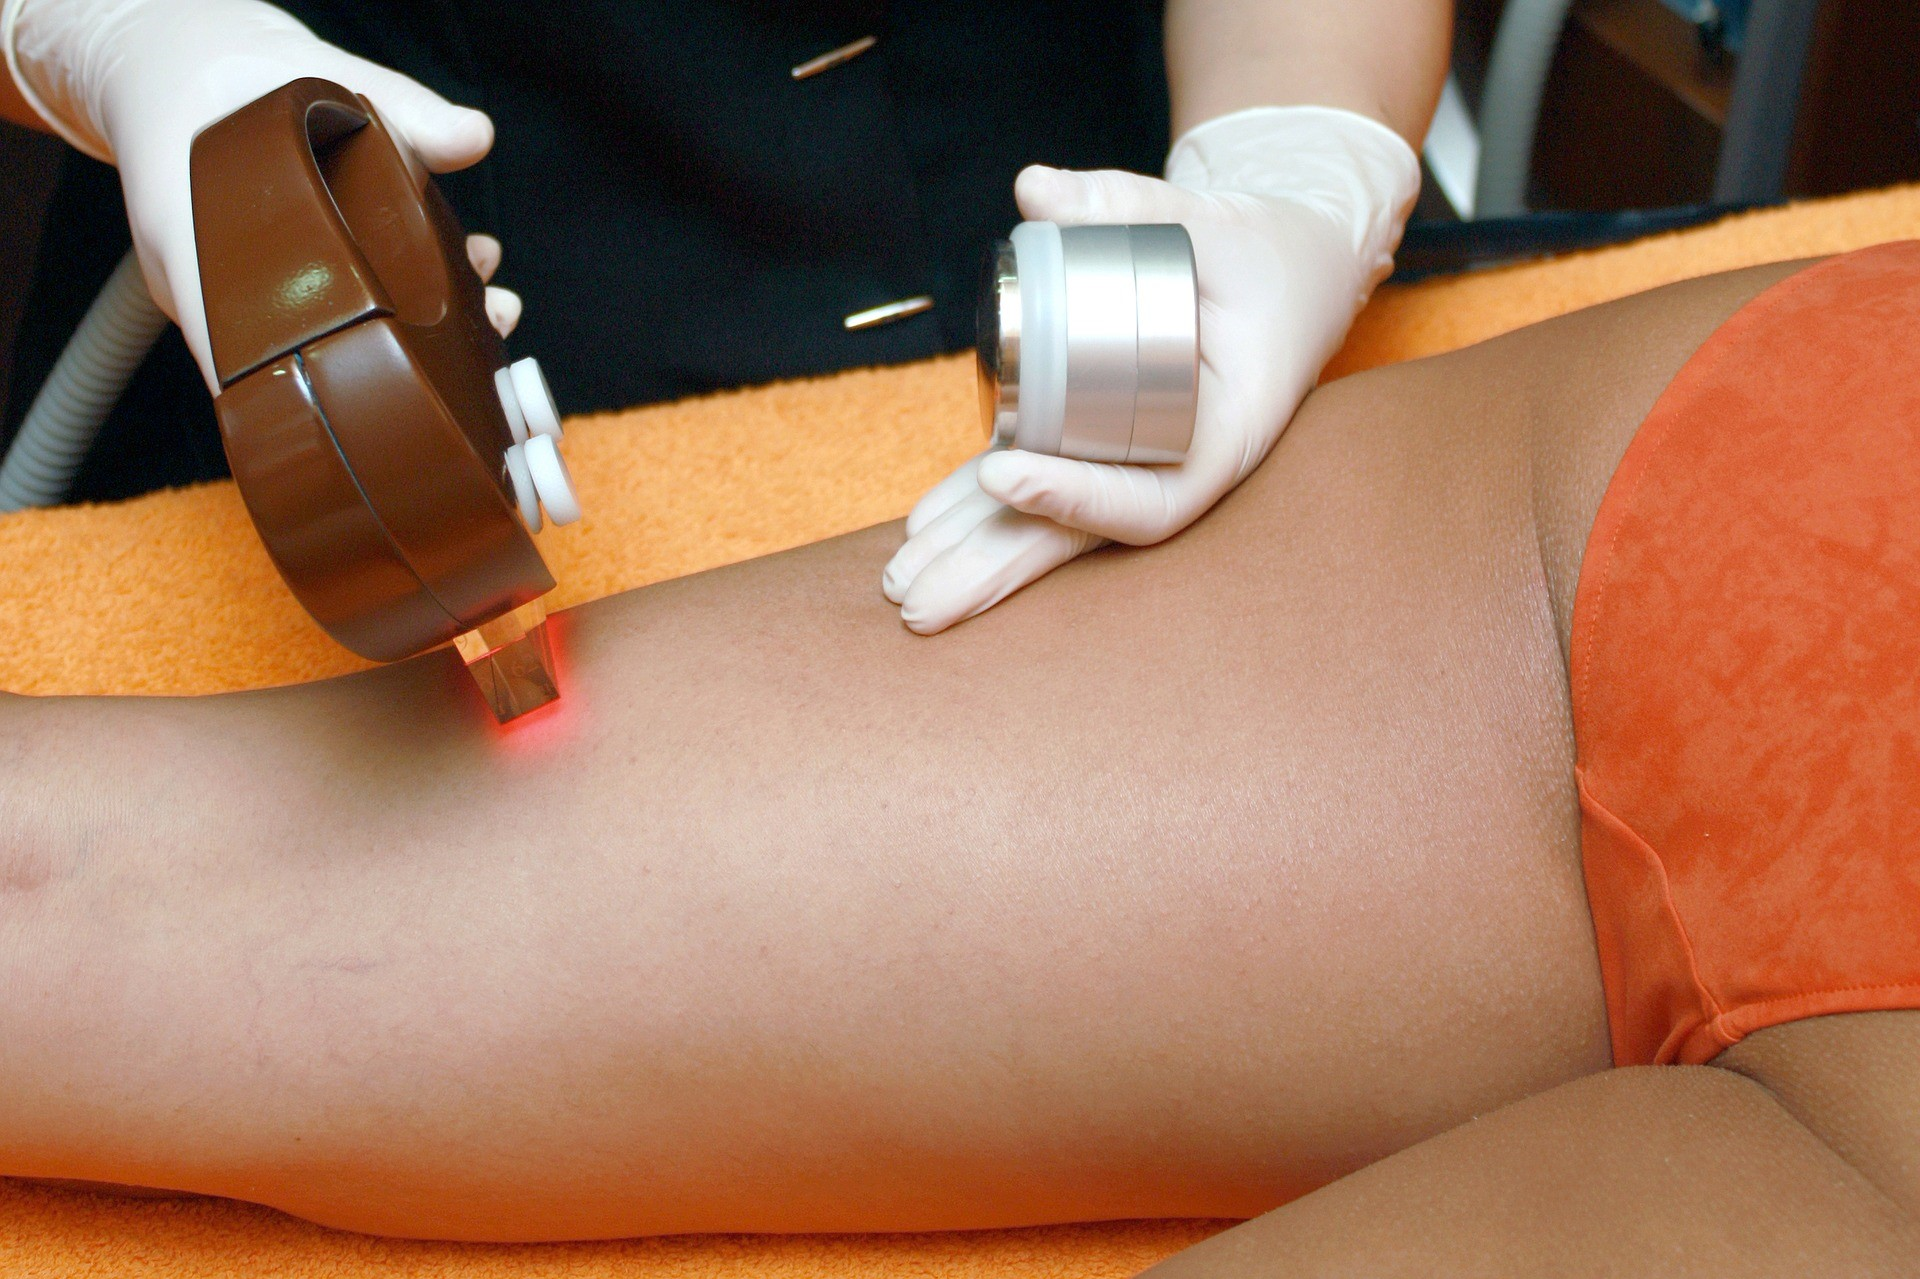 Laser Hair Removal Over Waxing